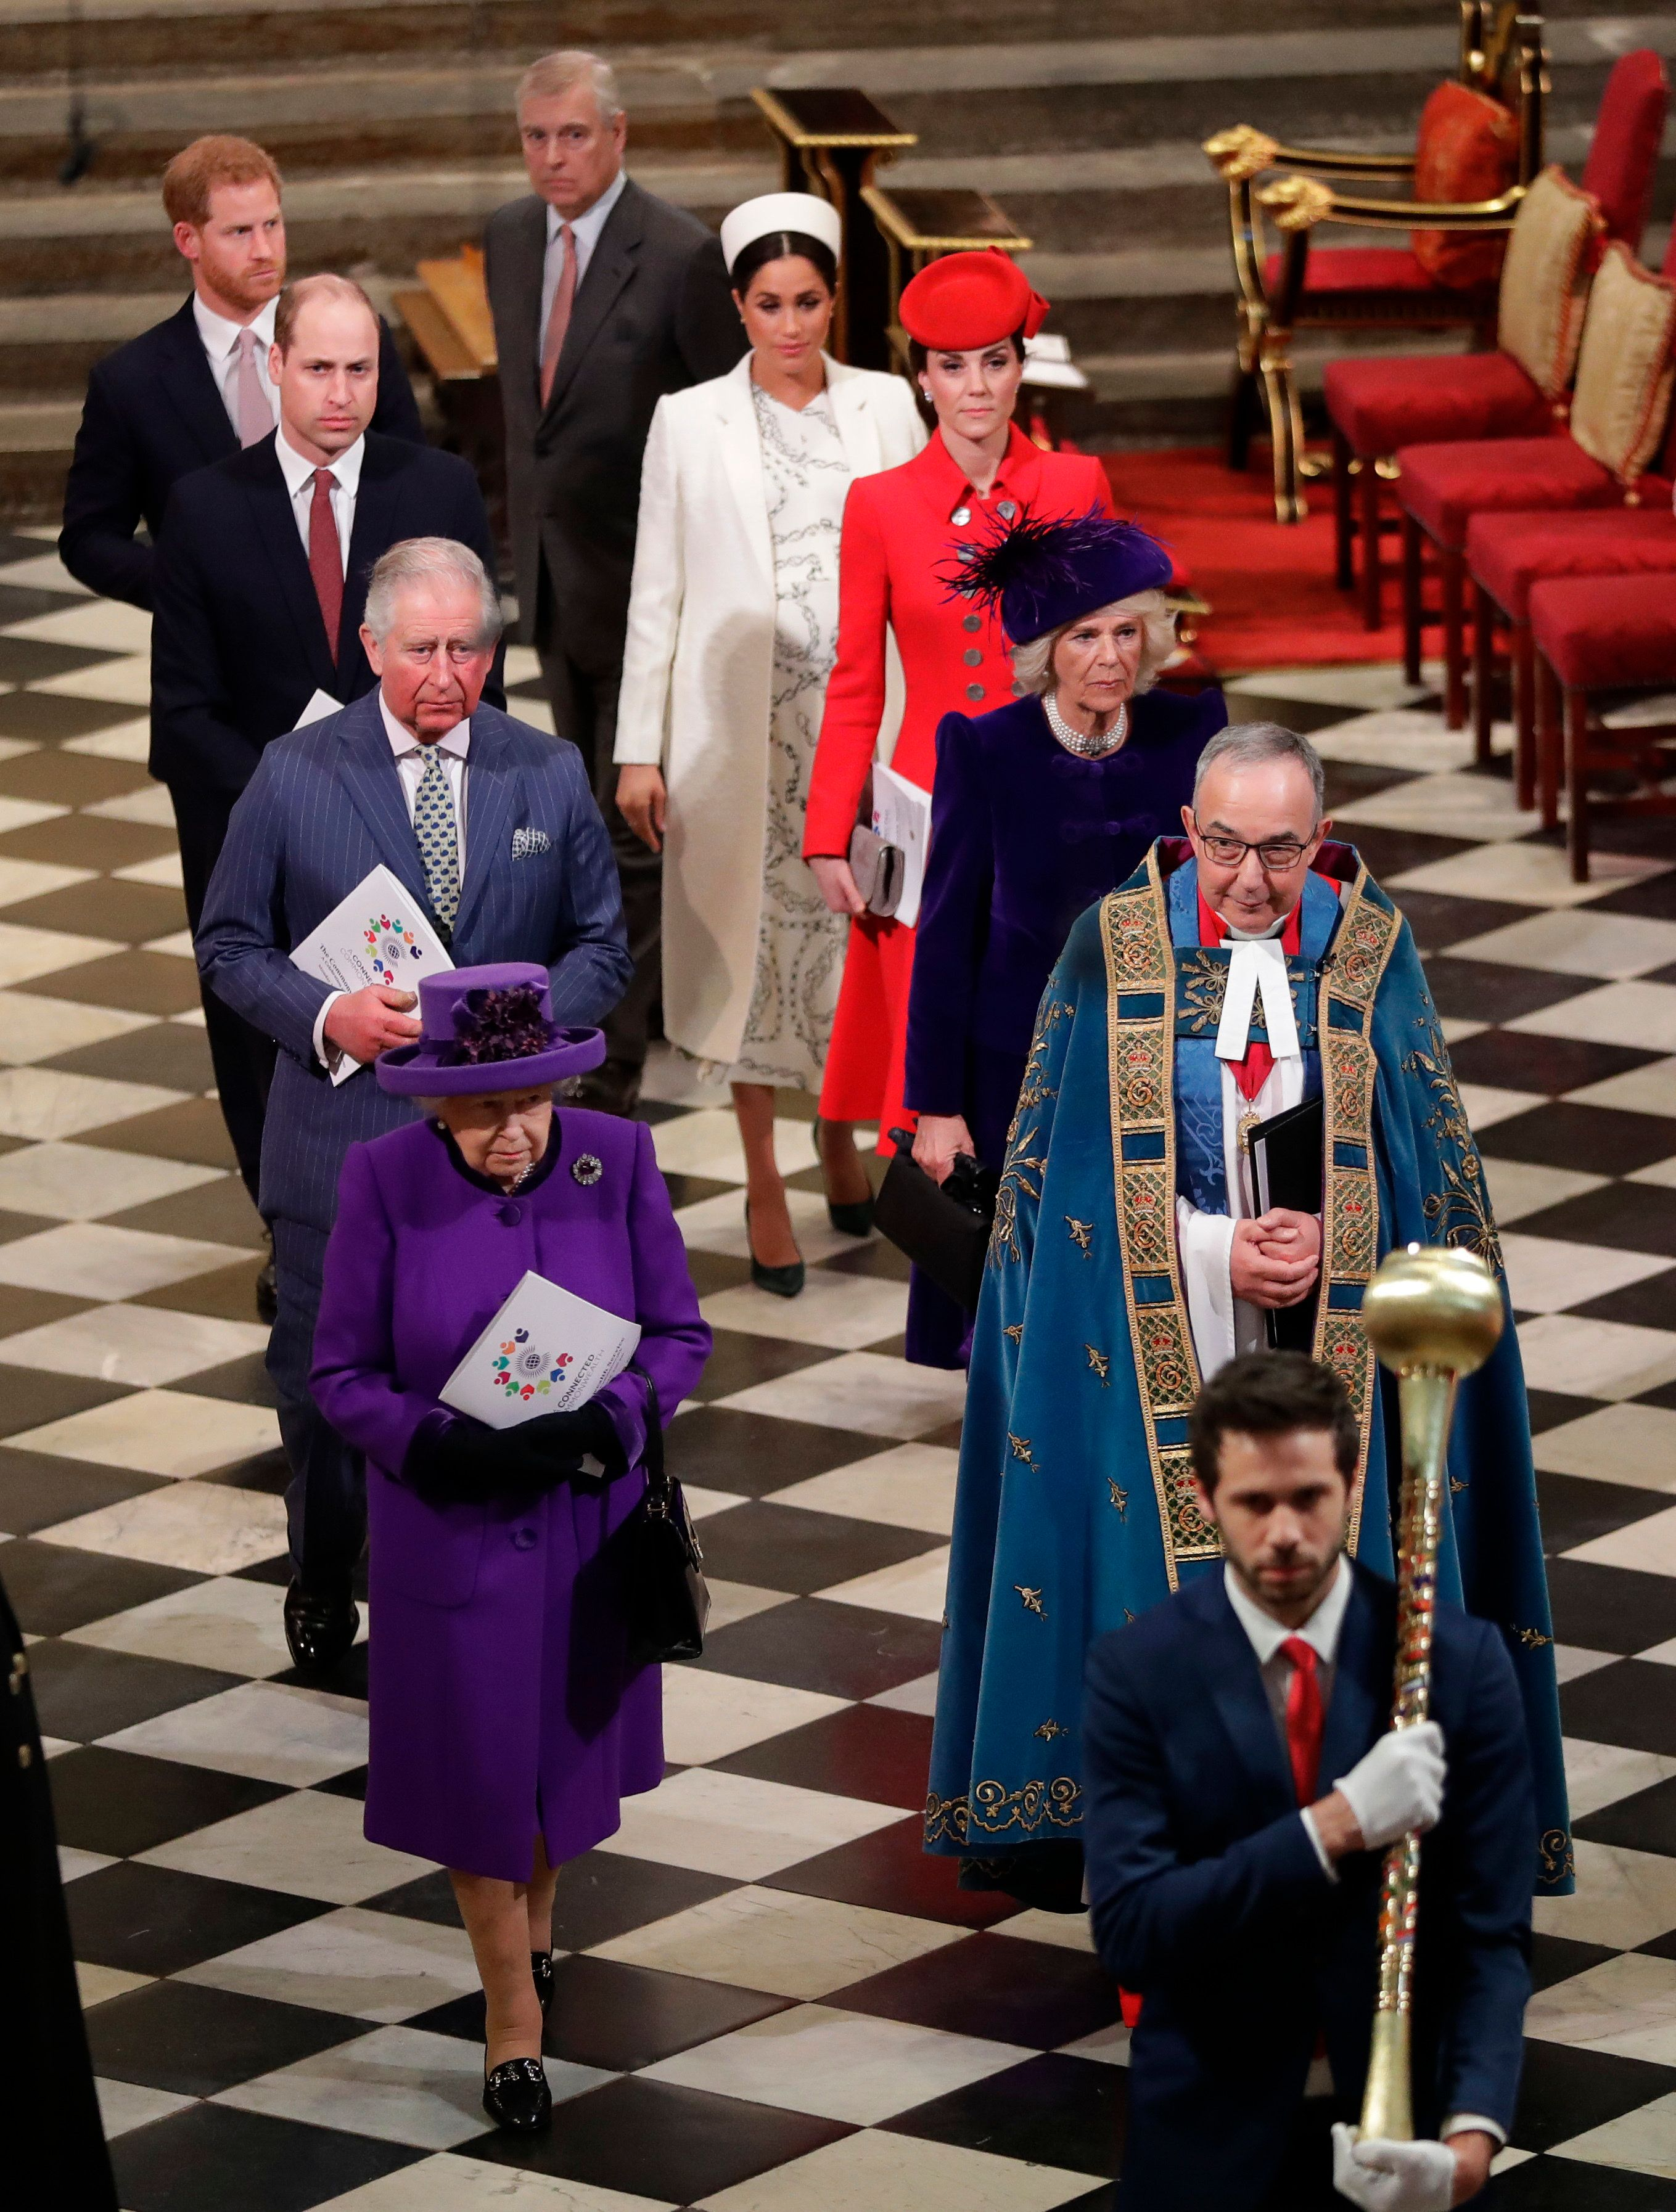 The royal family leaving the Commonwealth Day service.